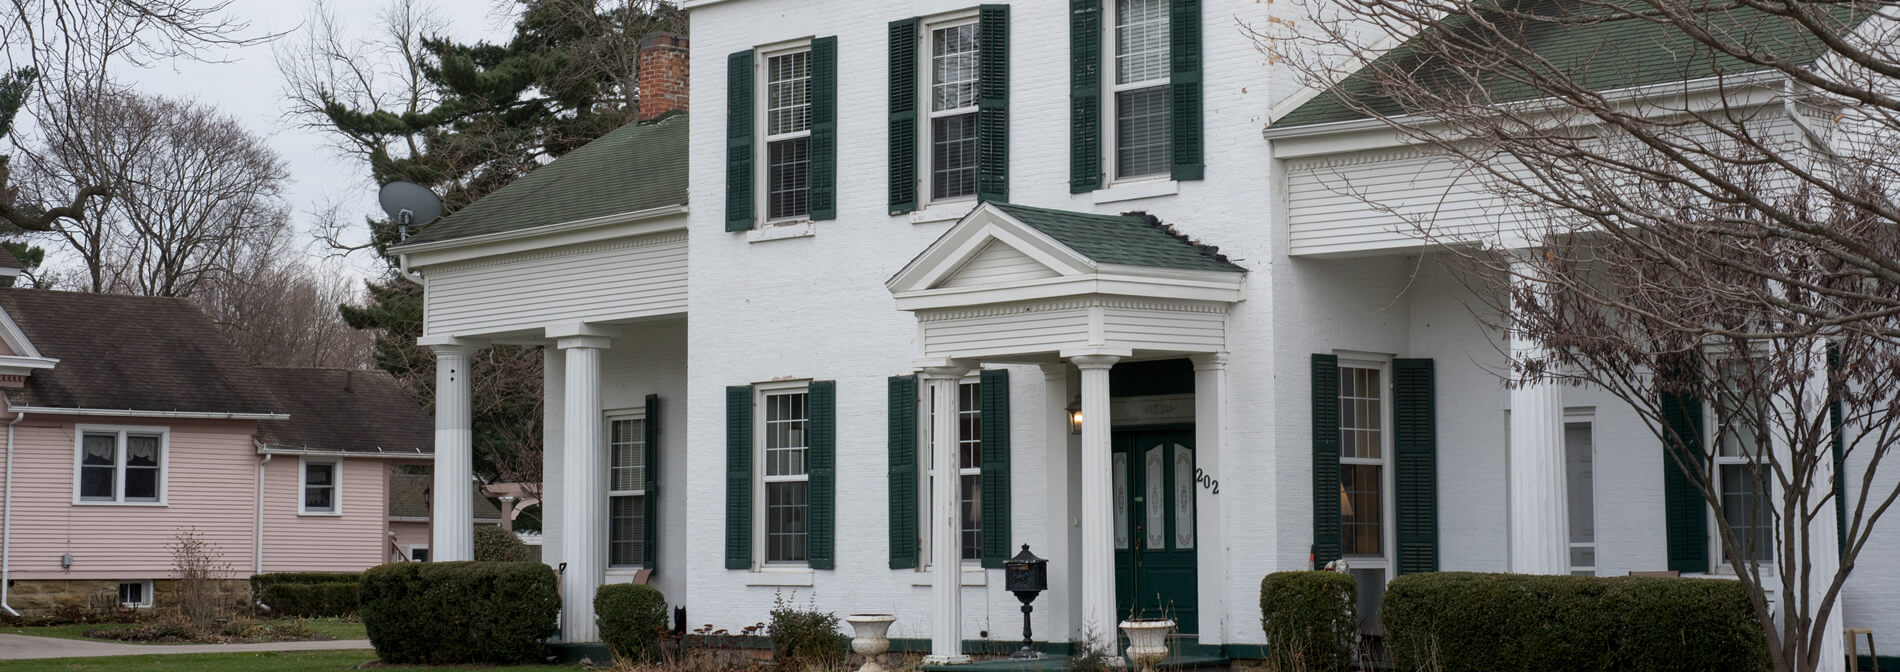 Historic White Greek Revival Style Munro House with Green Roof and Shutters